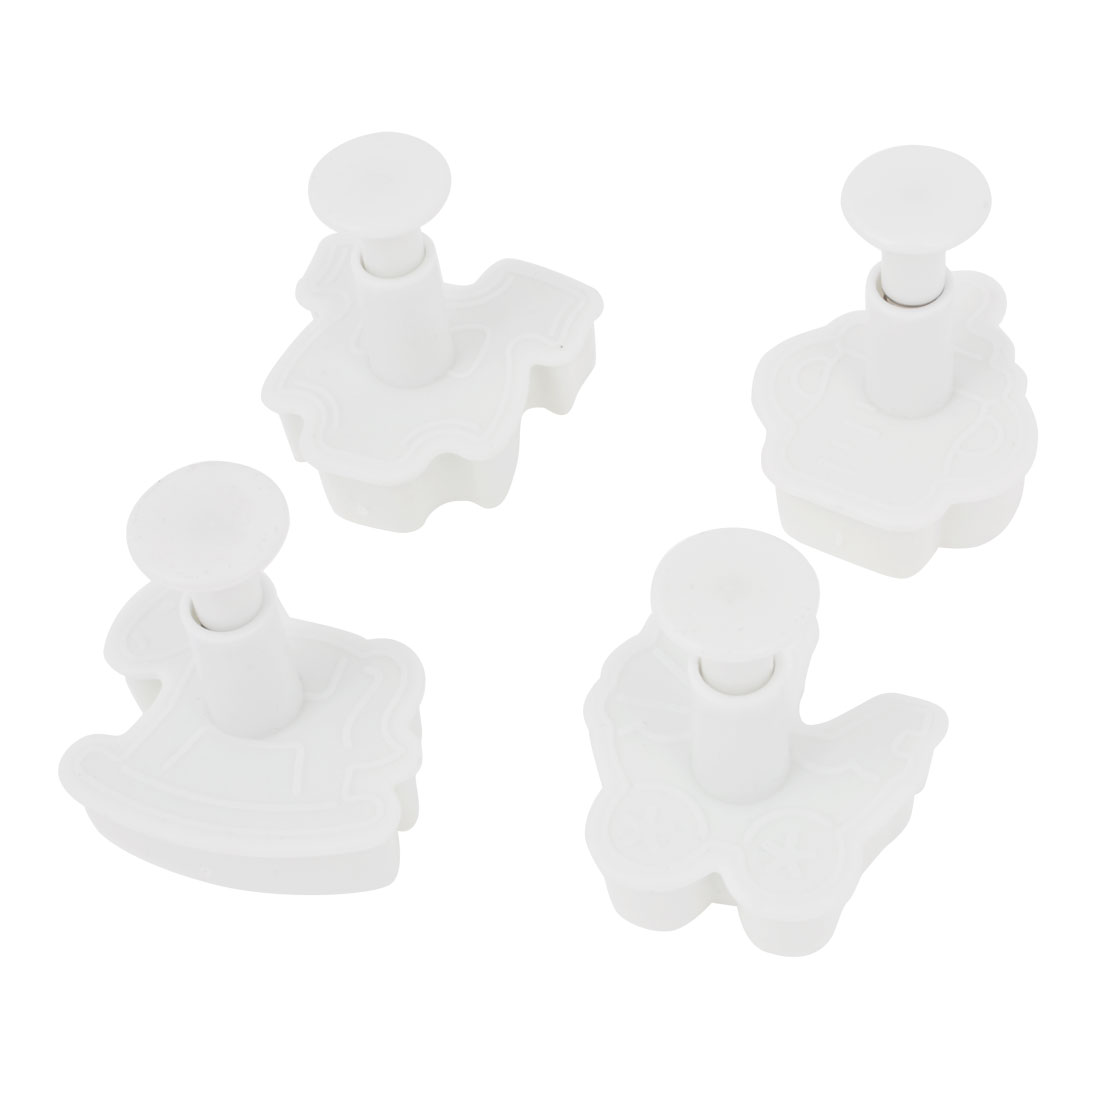 Household White Plastic Horse Carriage Blouse Cookie Cutter Mould 4 Pcs